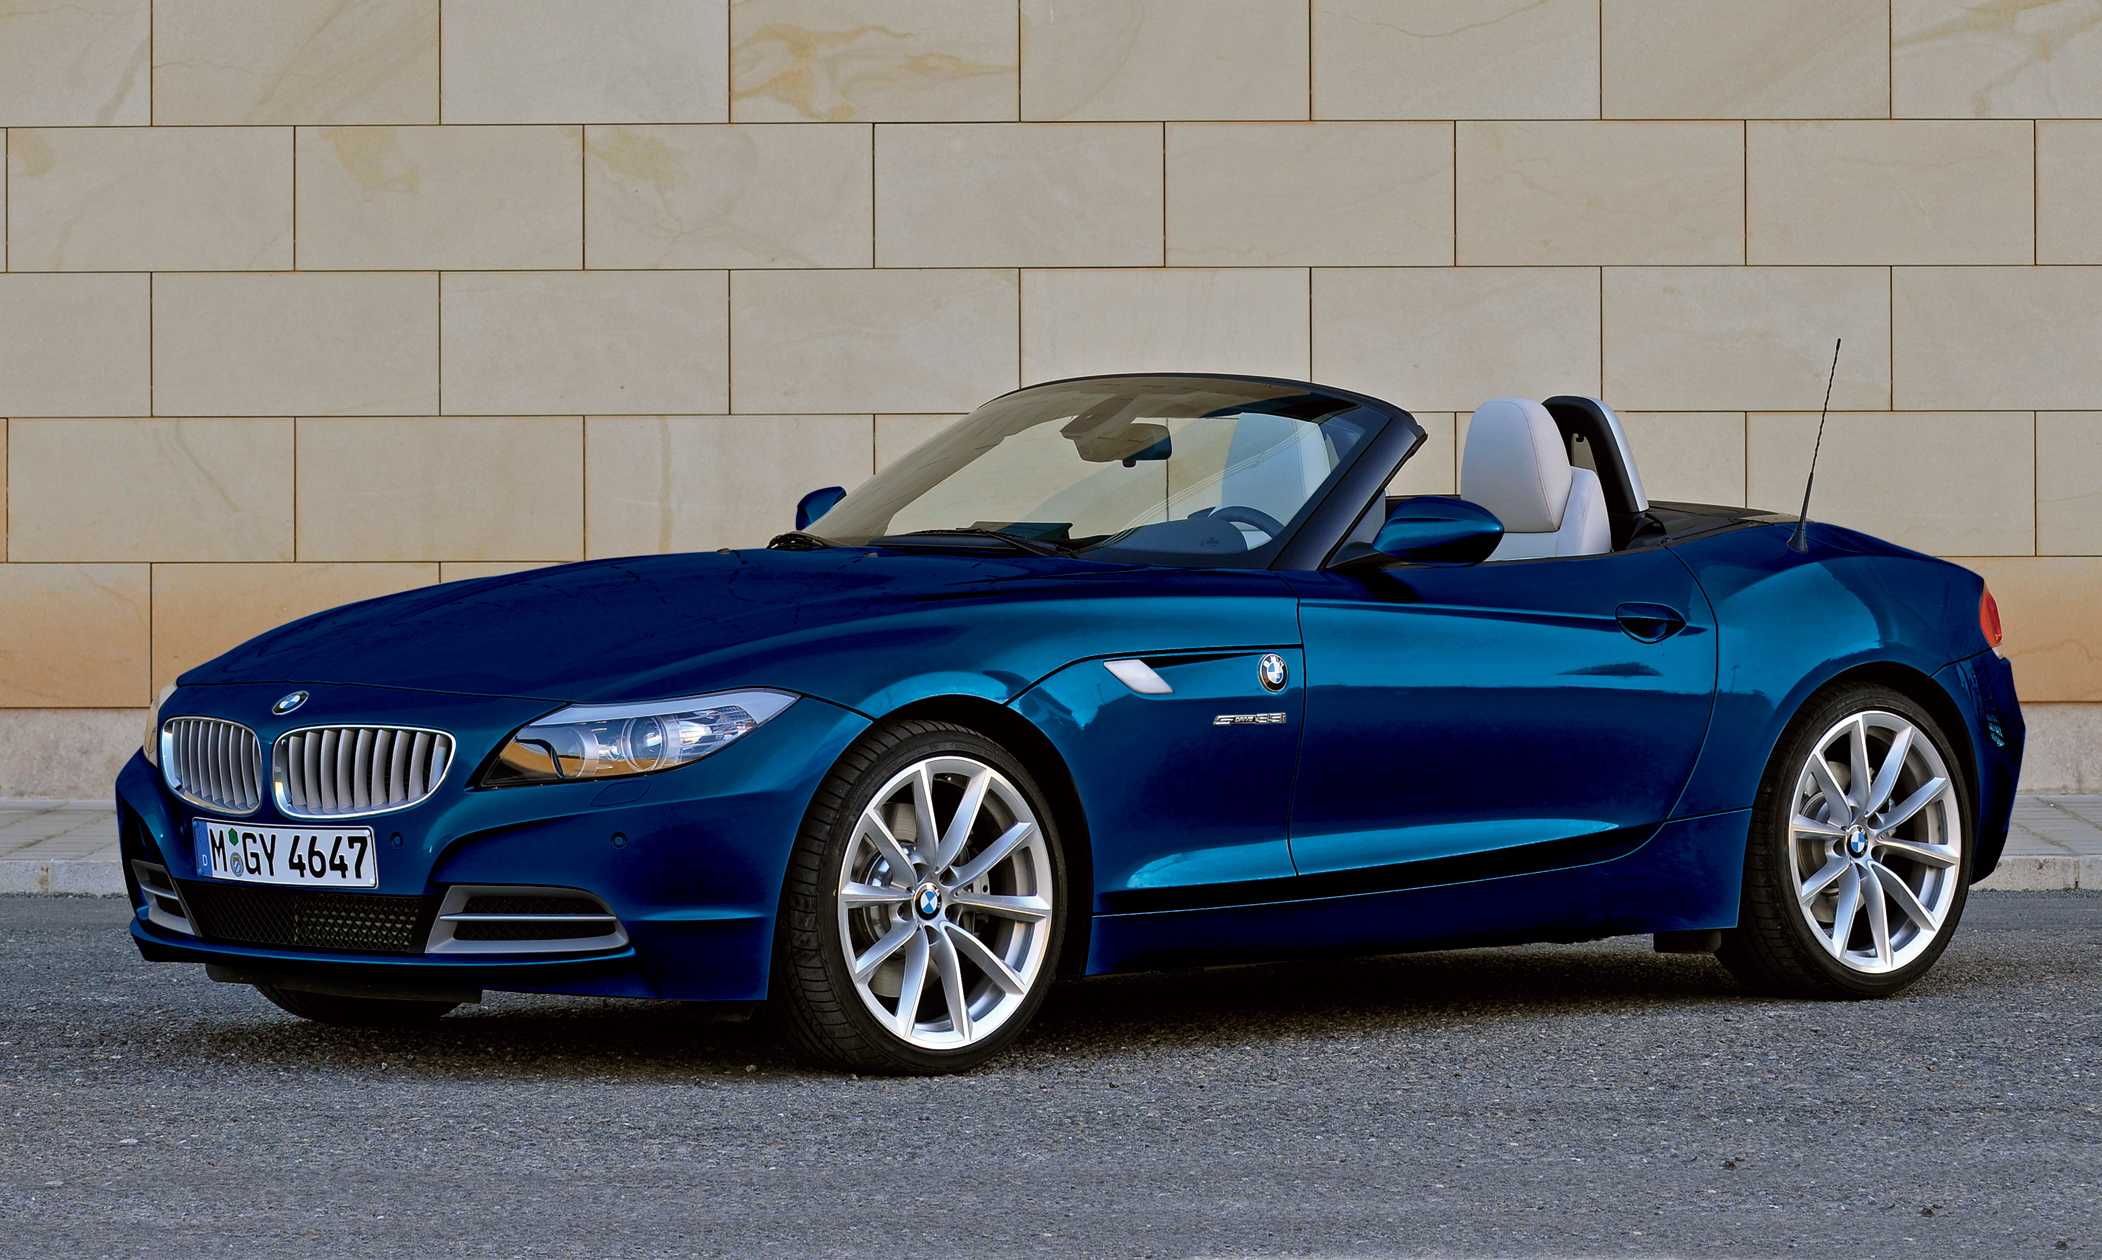 2015 Bmw Z4 More Powerful And Spacious Image 11